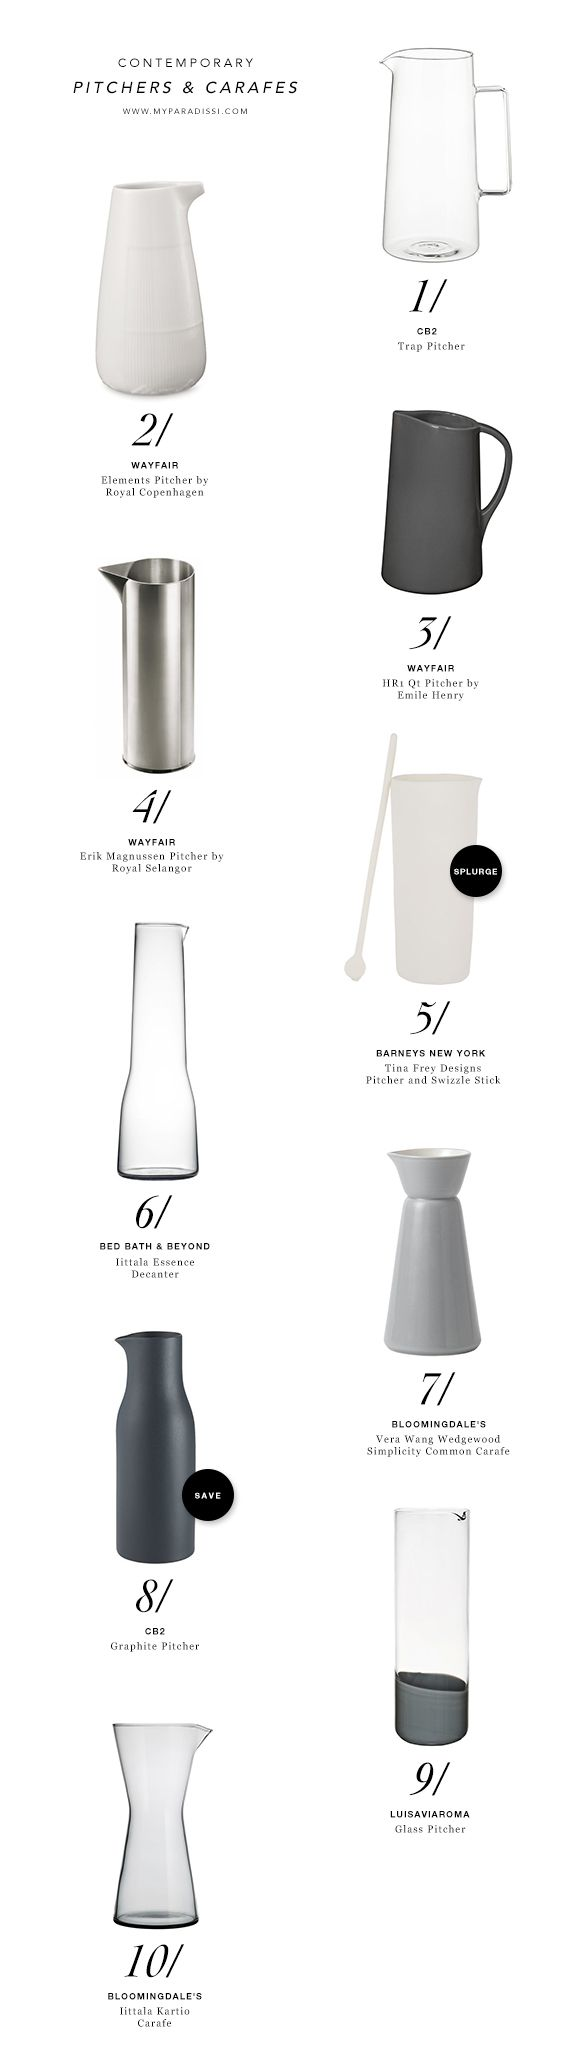 10 BEST: Contemporary pitchers and carafes